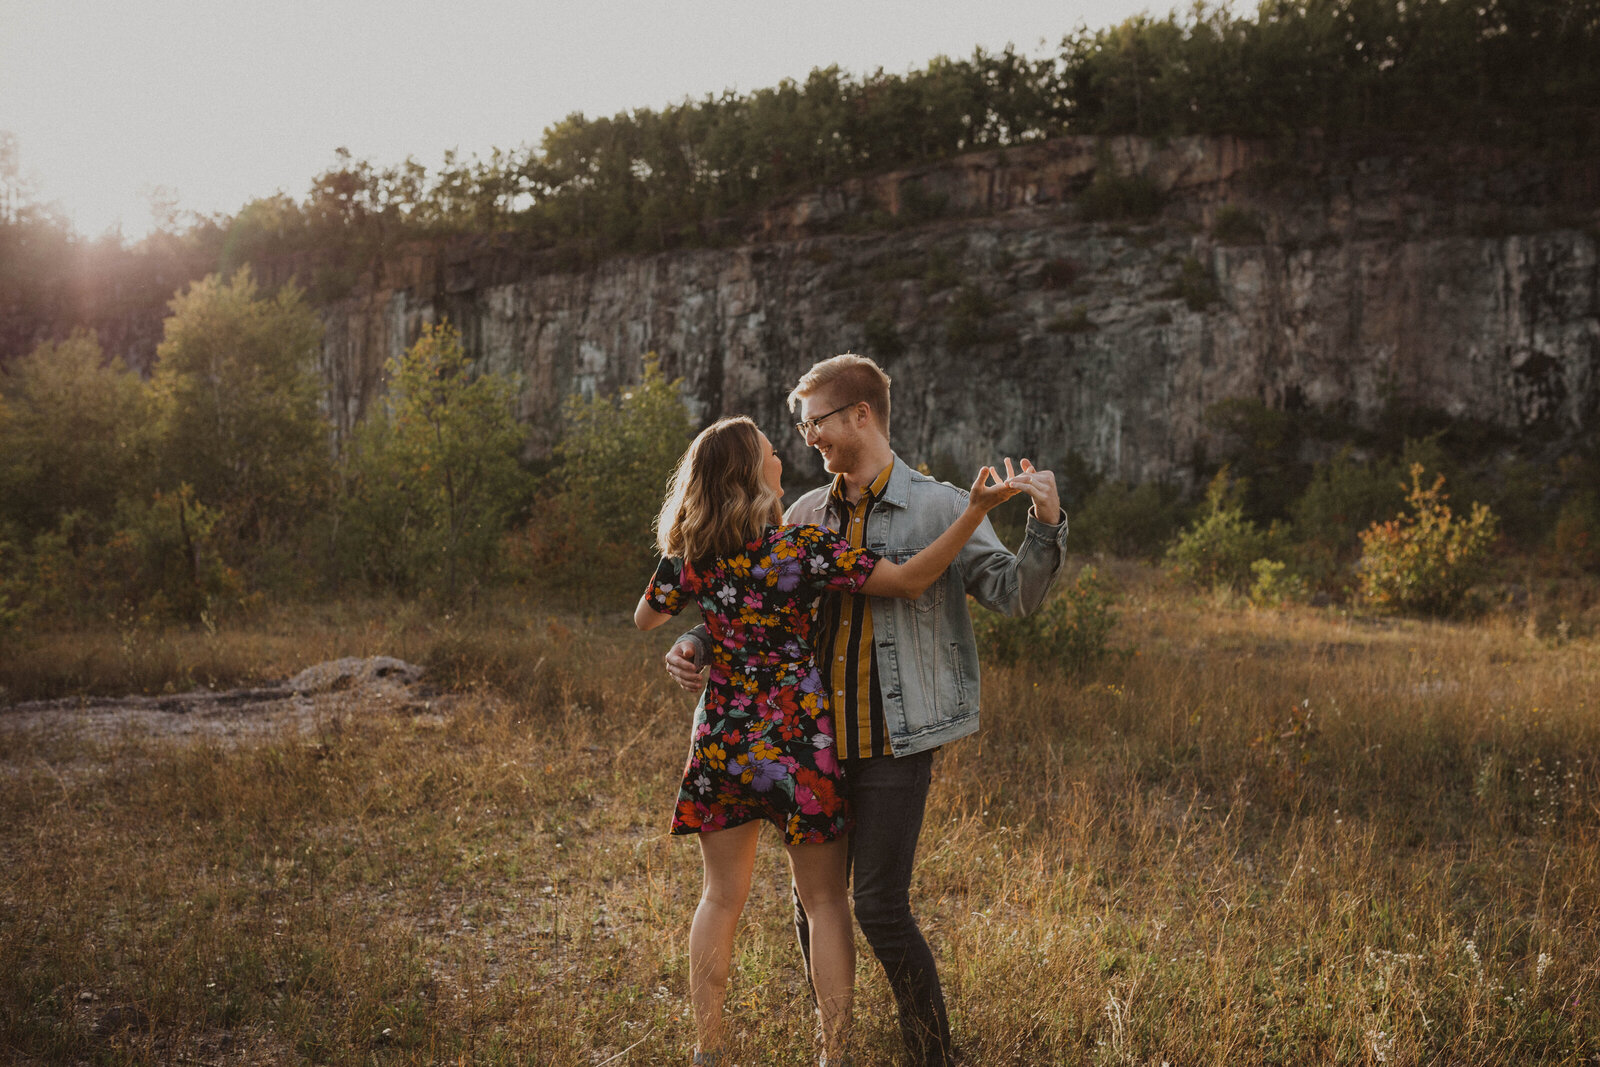 Couple dancing at sunset in a feild